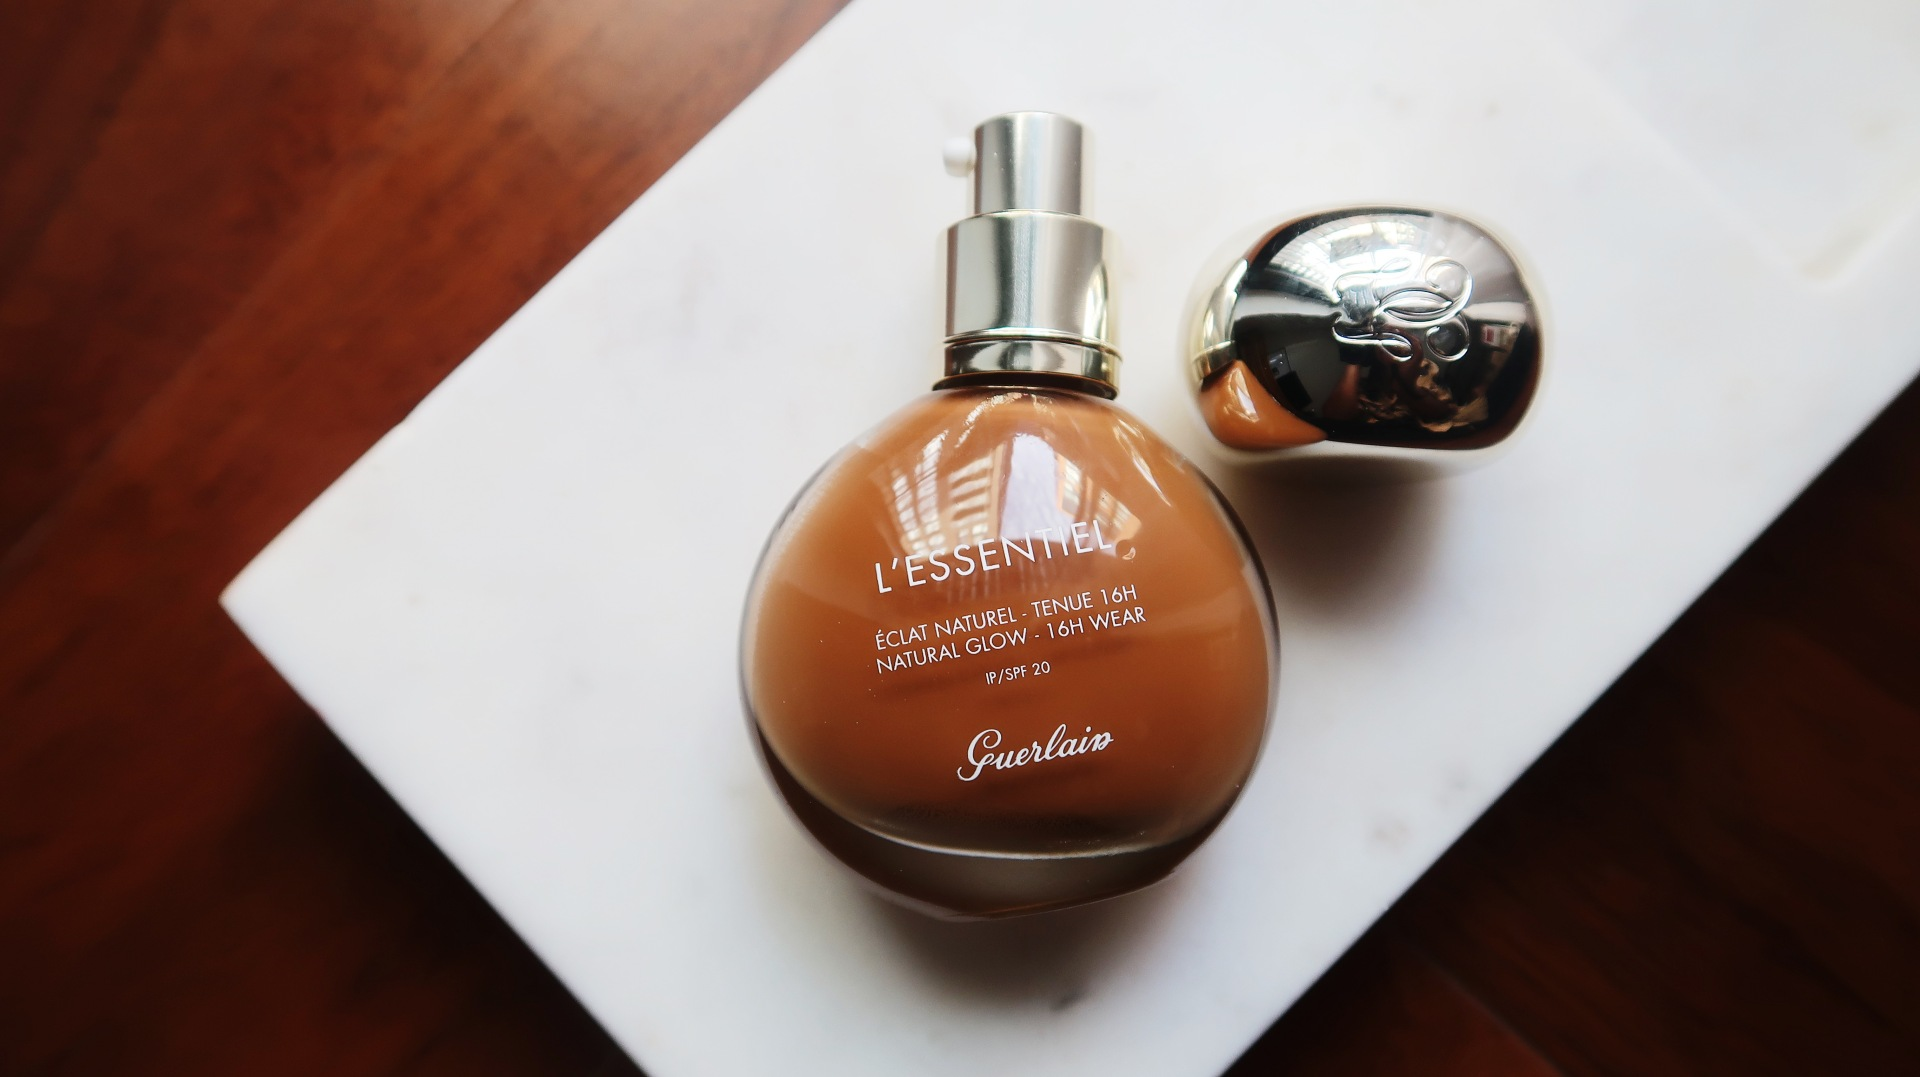 Blush London Review Guerlain L'essentiel Natural Glow Foundation9F510EF0-8179-43E4-96DB-516DBA330063